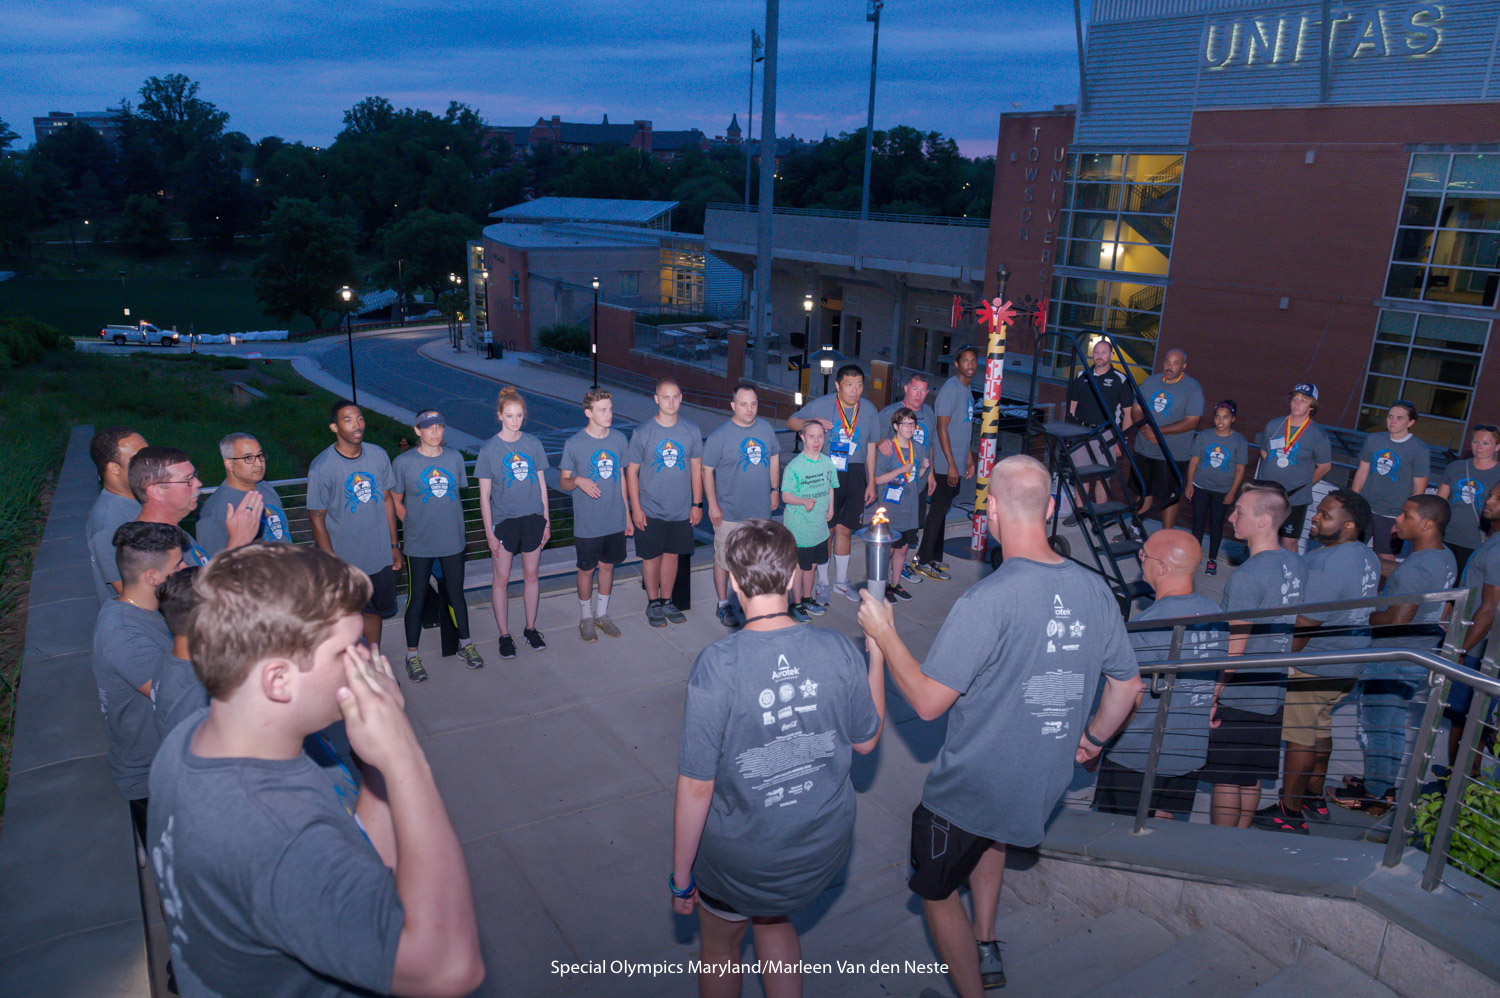 Two athletes carry the Olympic torch to its final destination in front of Unitas Stadium at Towson University, MD at the end of the Opening Ceremony. They are surrounded by Law Enforcement Torch Runners and athletes. The torch will remain lit until the Summer Games are completed.